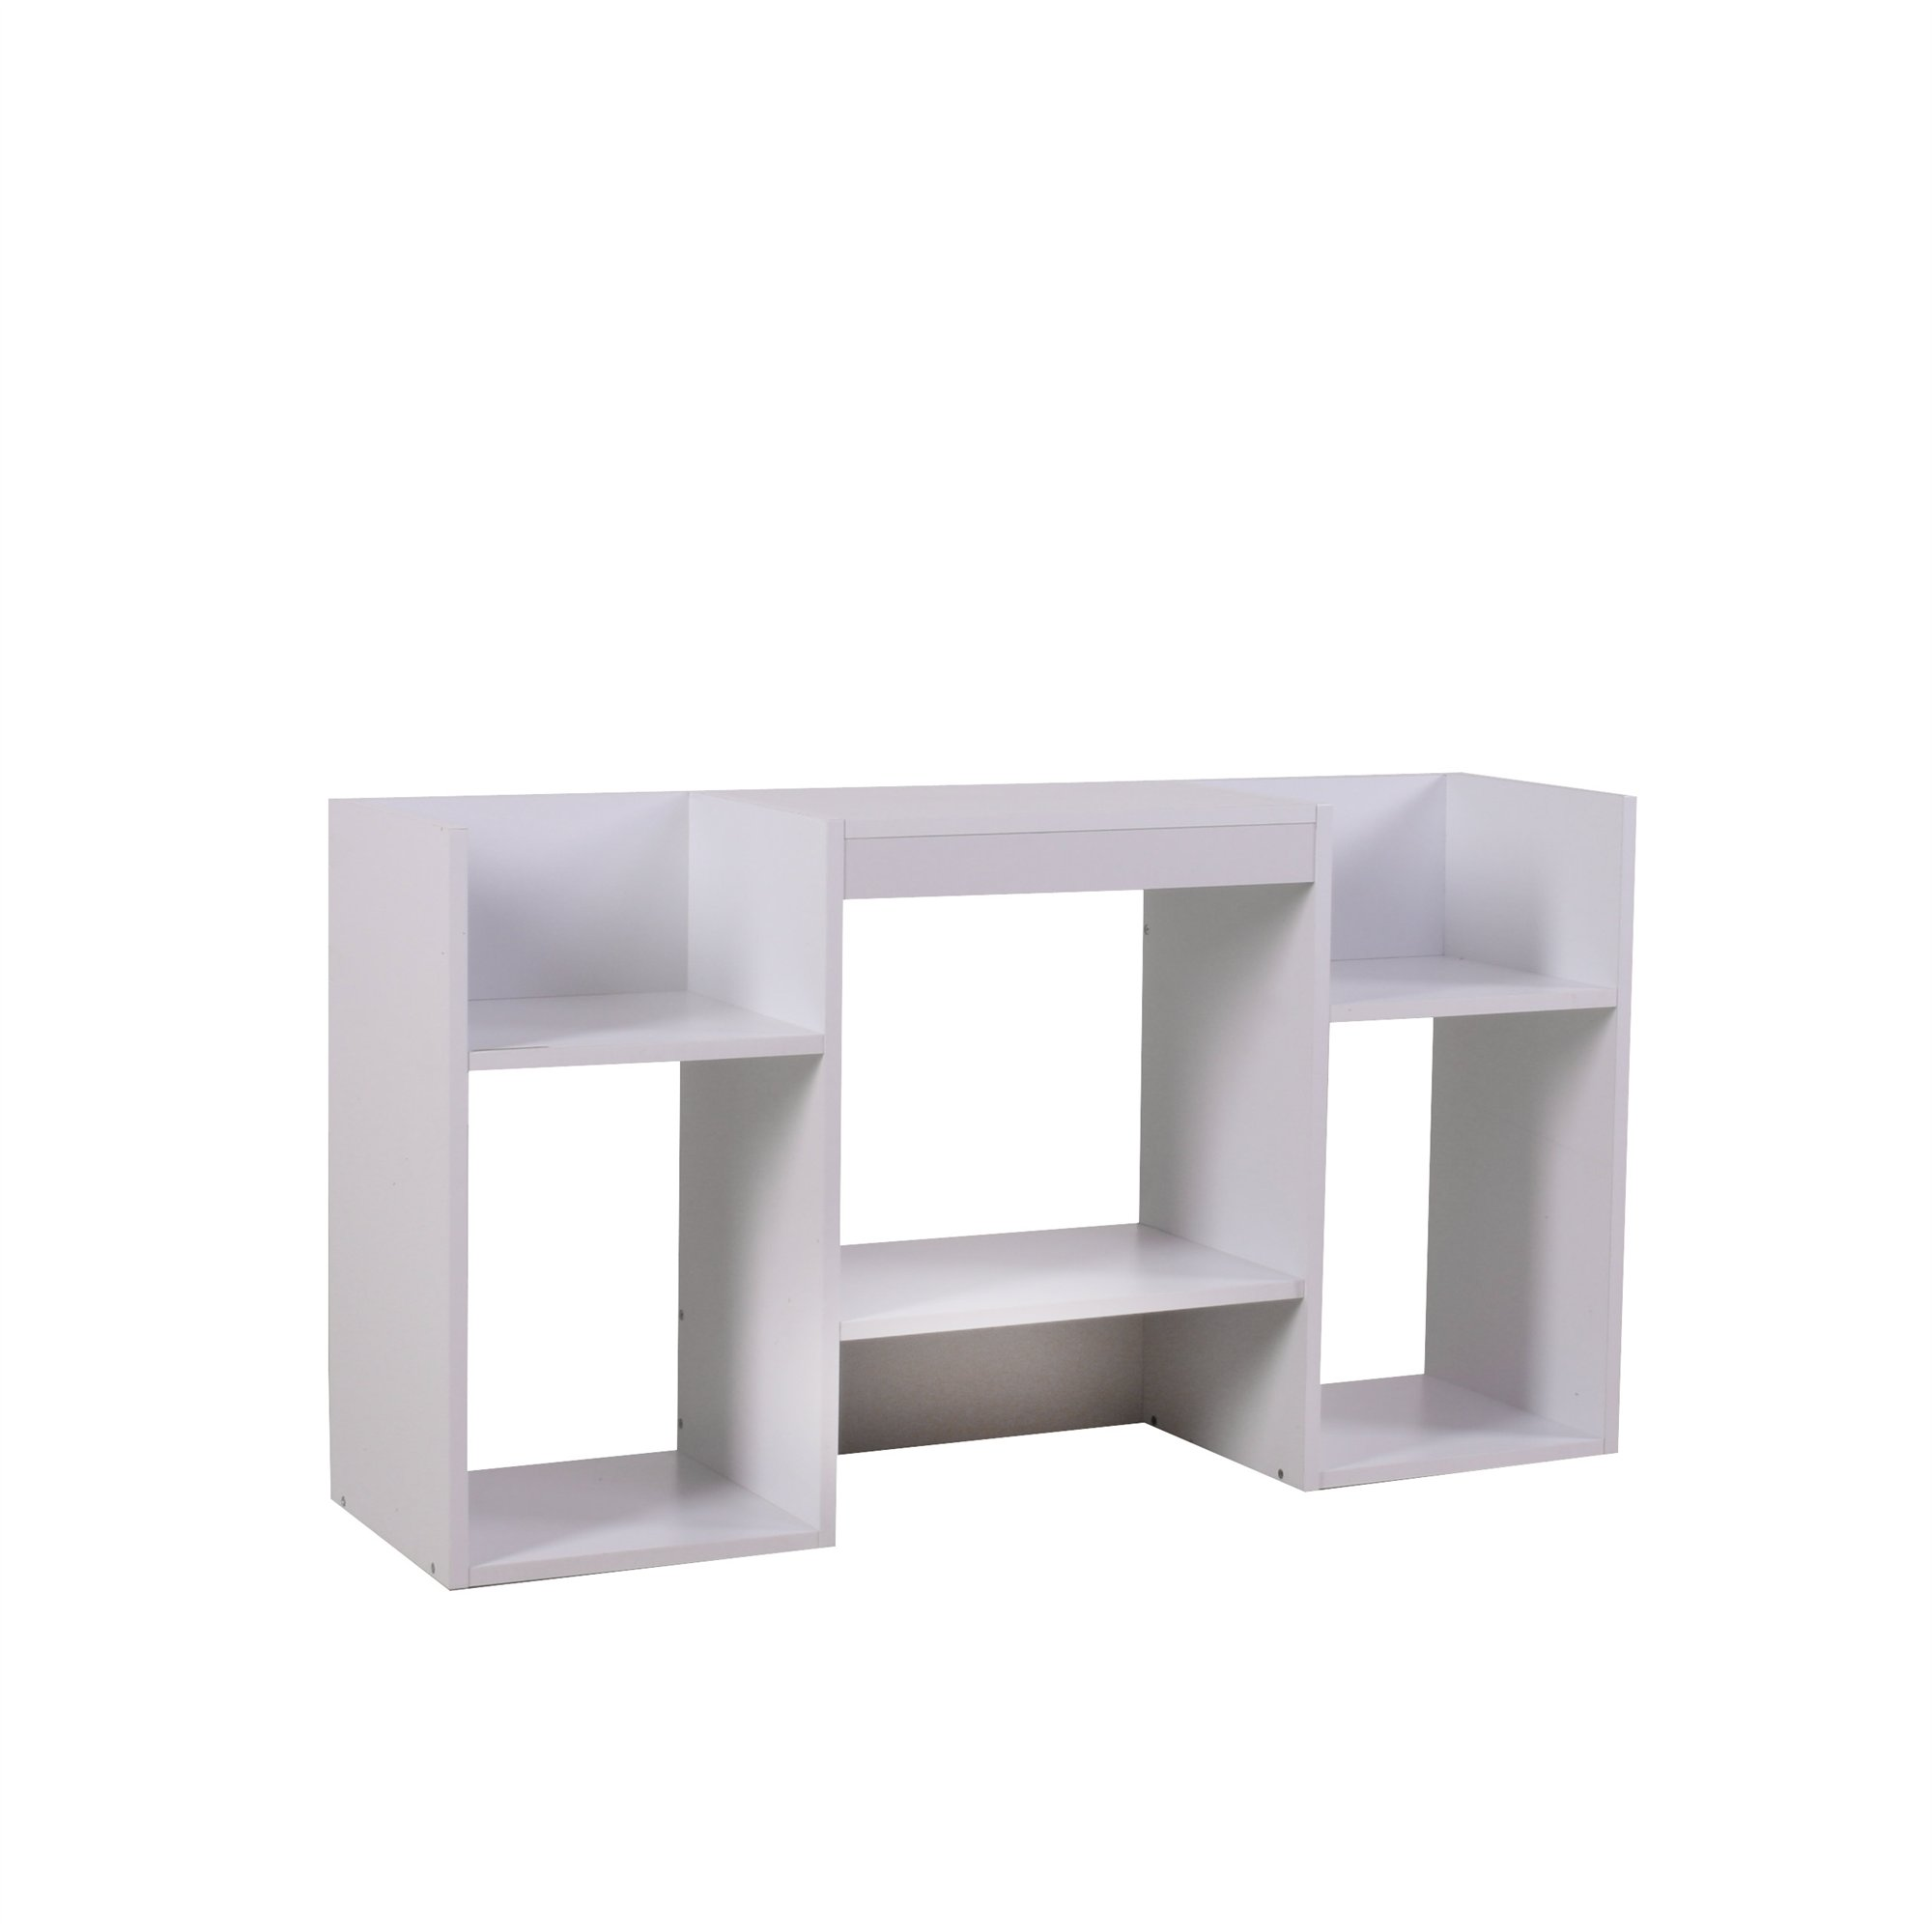 Mueble para tv soporte para tv de dise o 109x59x30 cm blanca for Mesas de tv de diseno